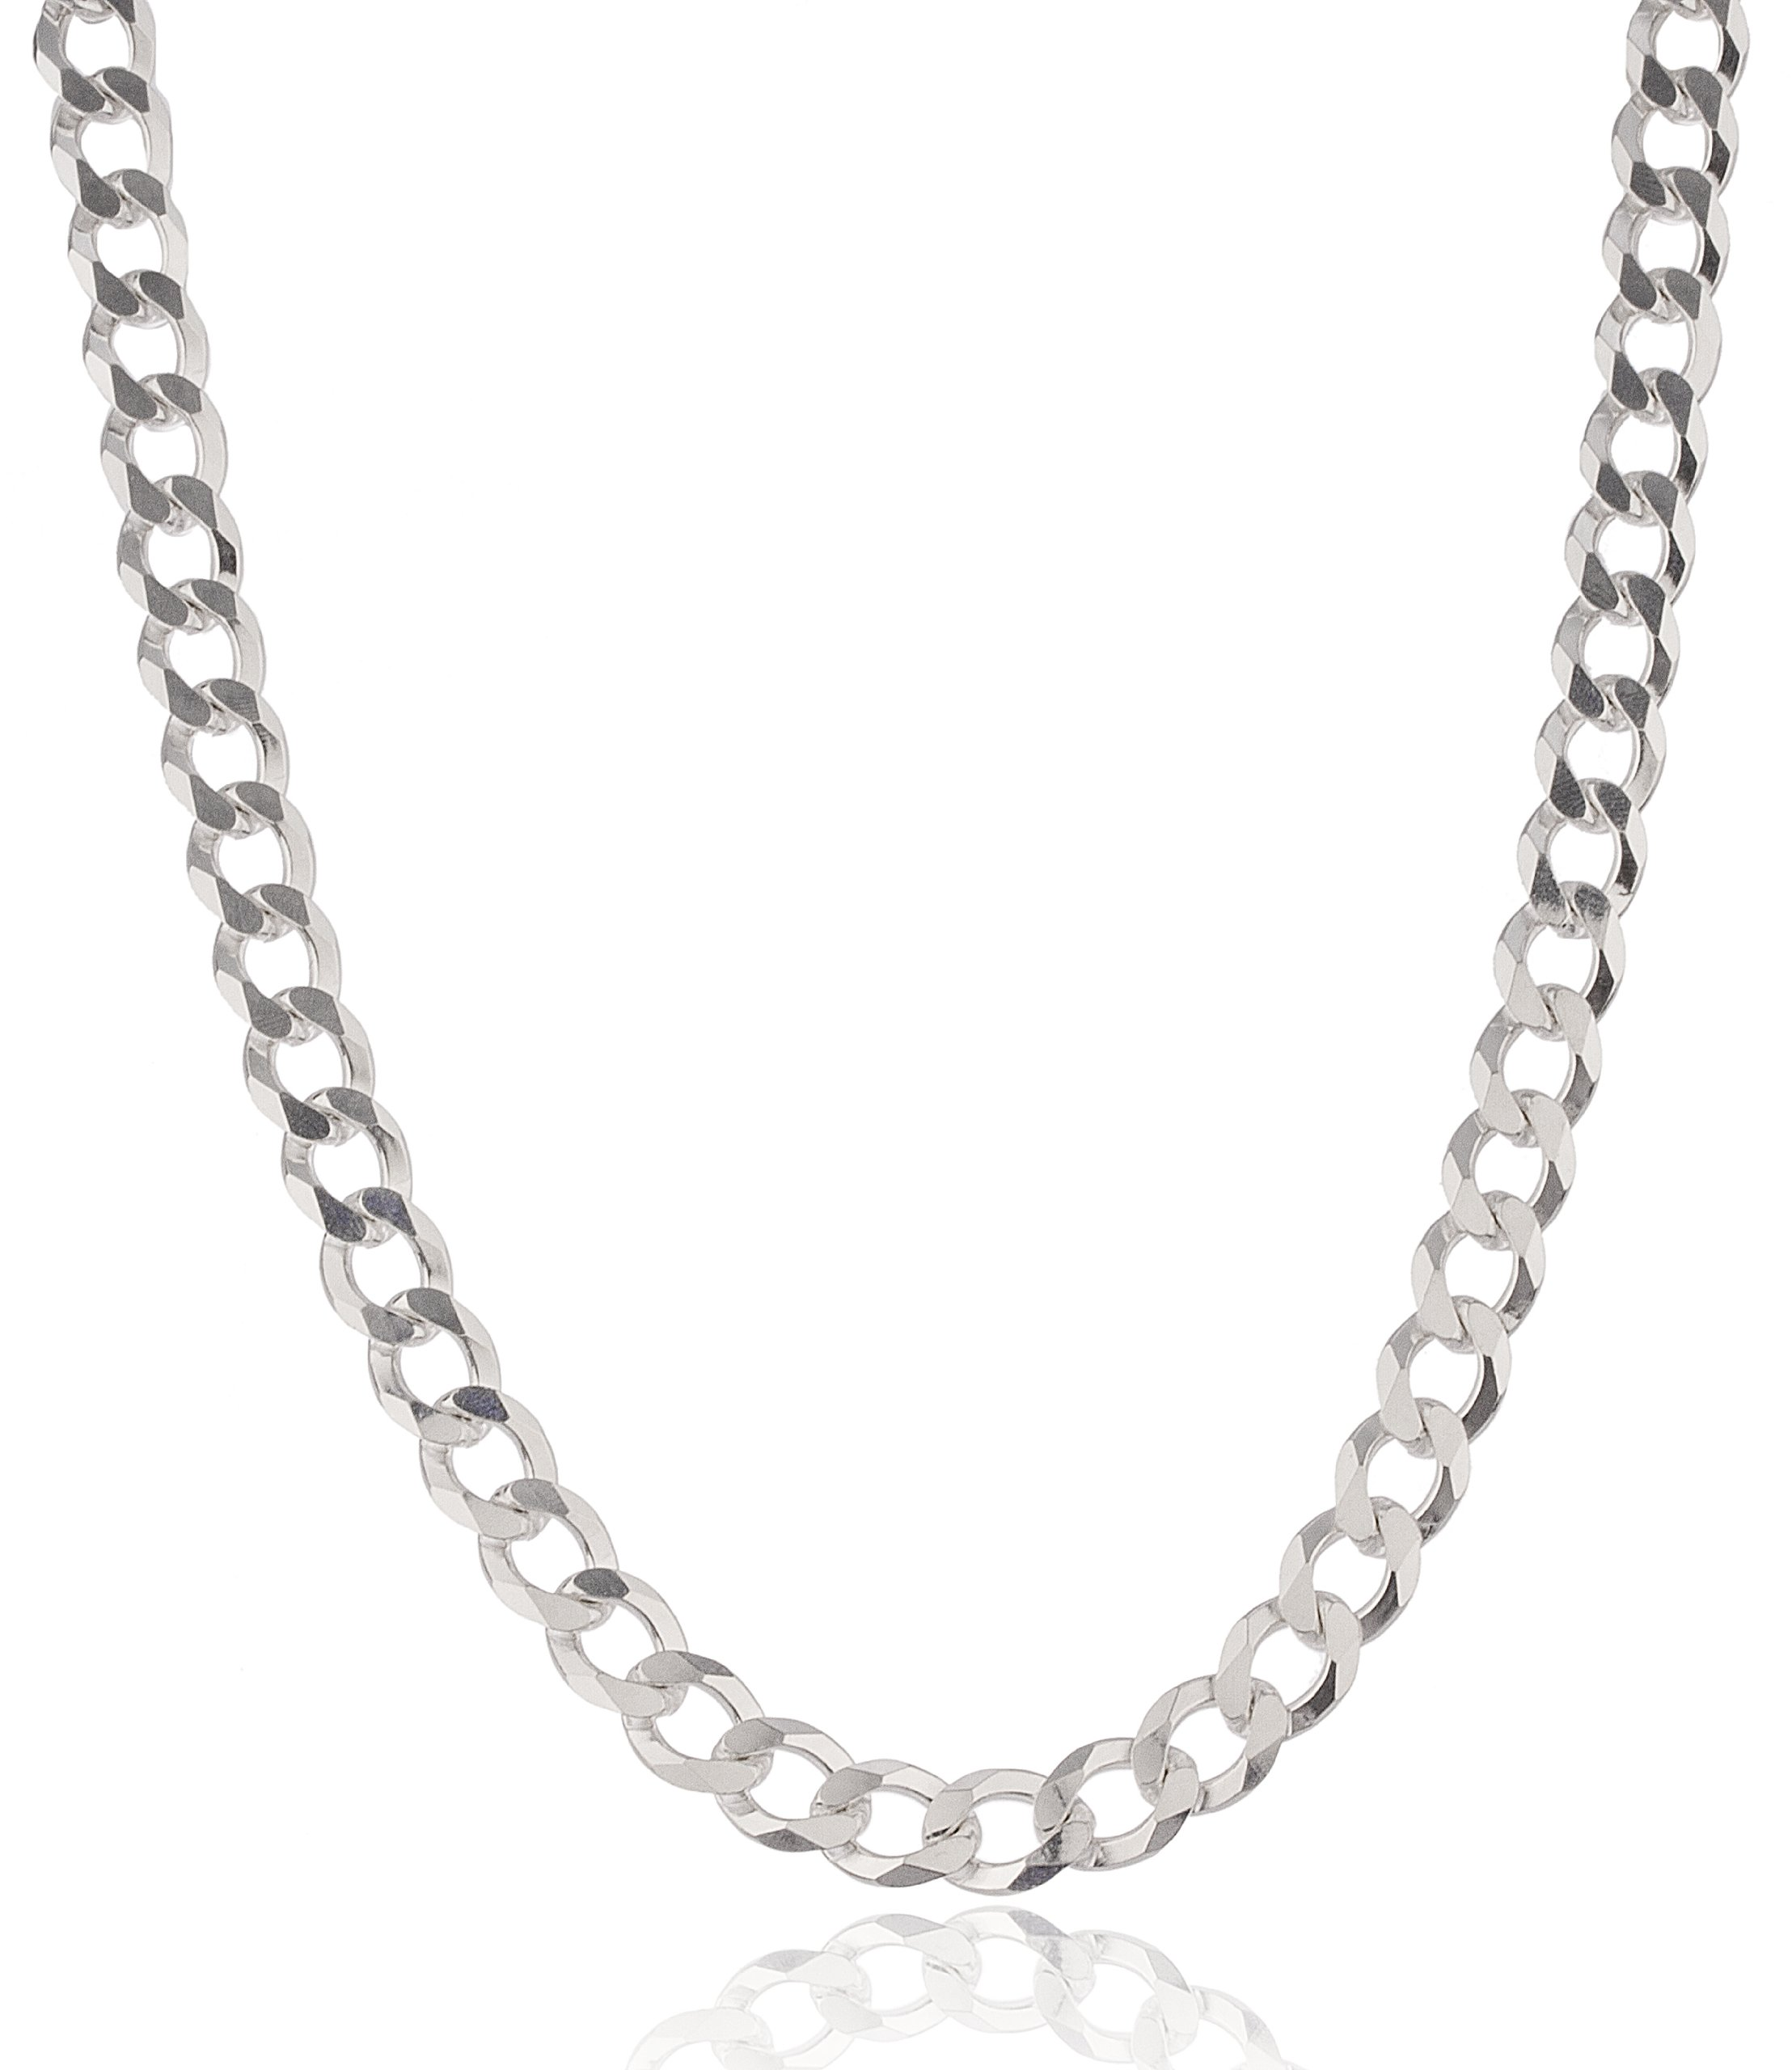 Real 925 Sterling Silver 9mm Prolux Cuban Chain (28 Inches)